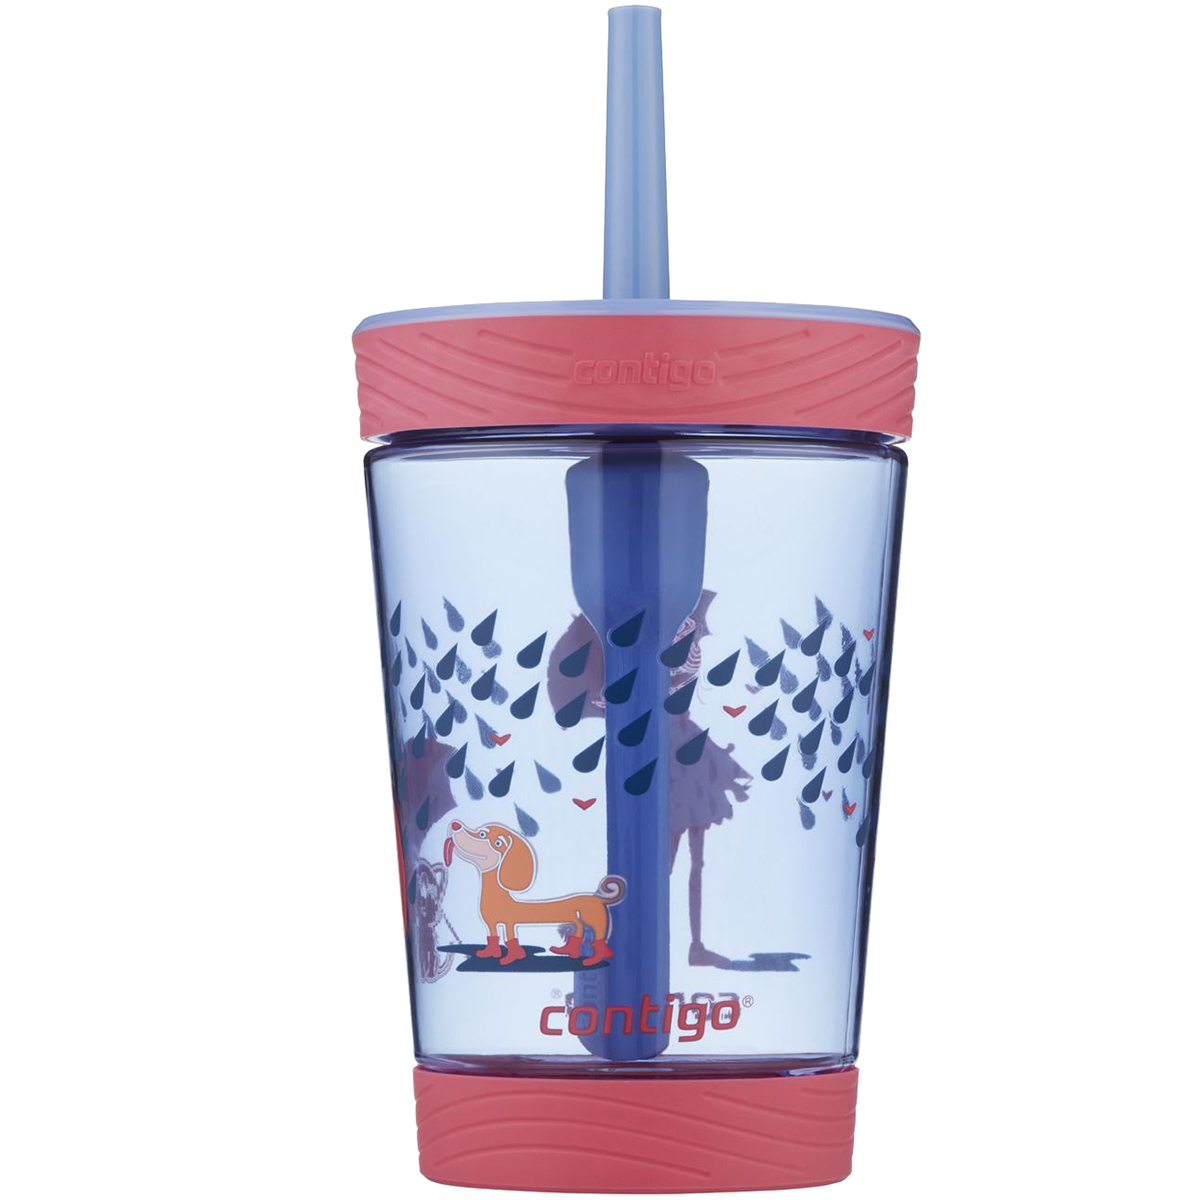 Contigo-14-oz-Kid-039-s-Spill-Proof-Sippy-Cup-Tumbler-with-Straw thumbnail 16